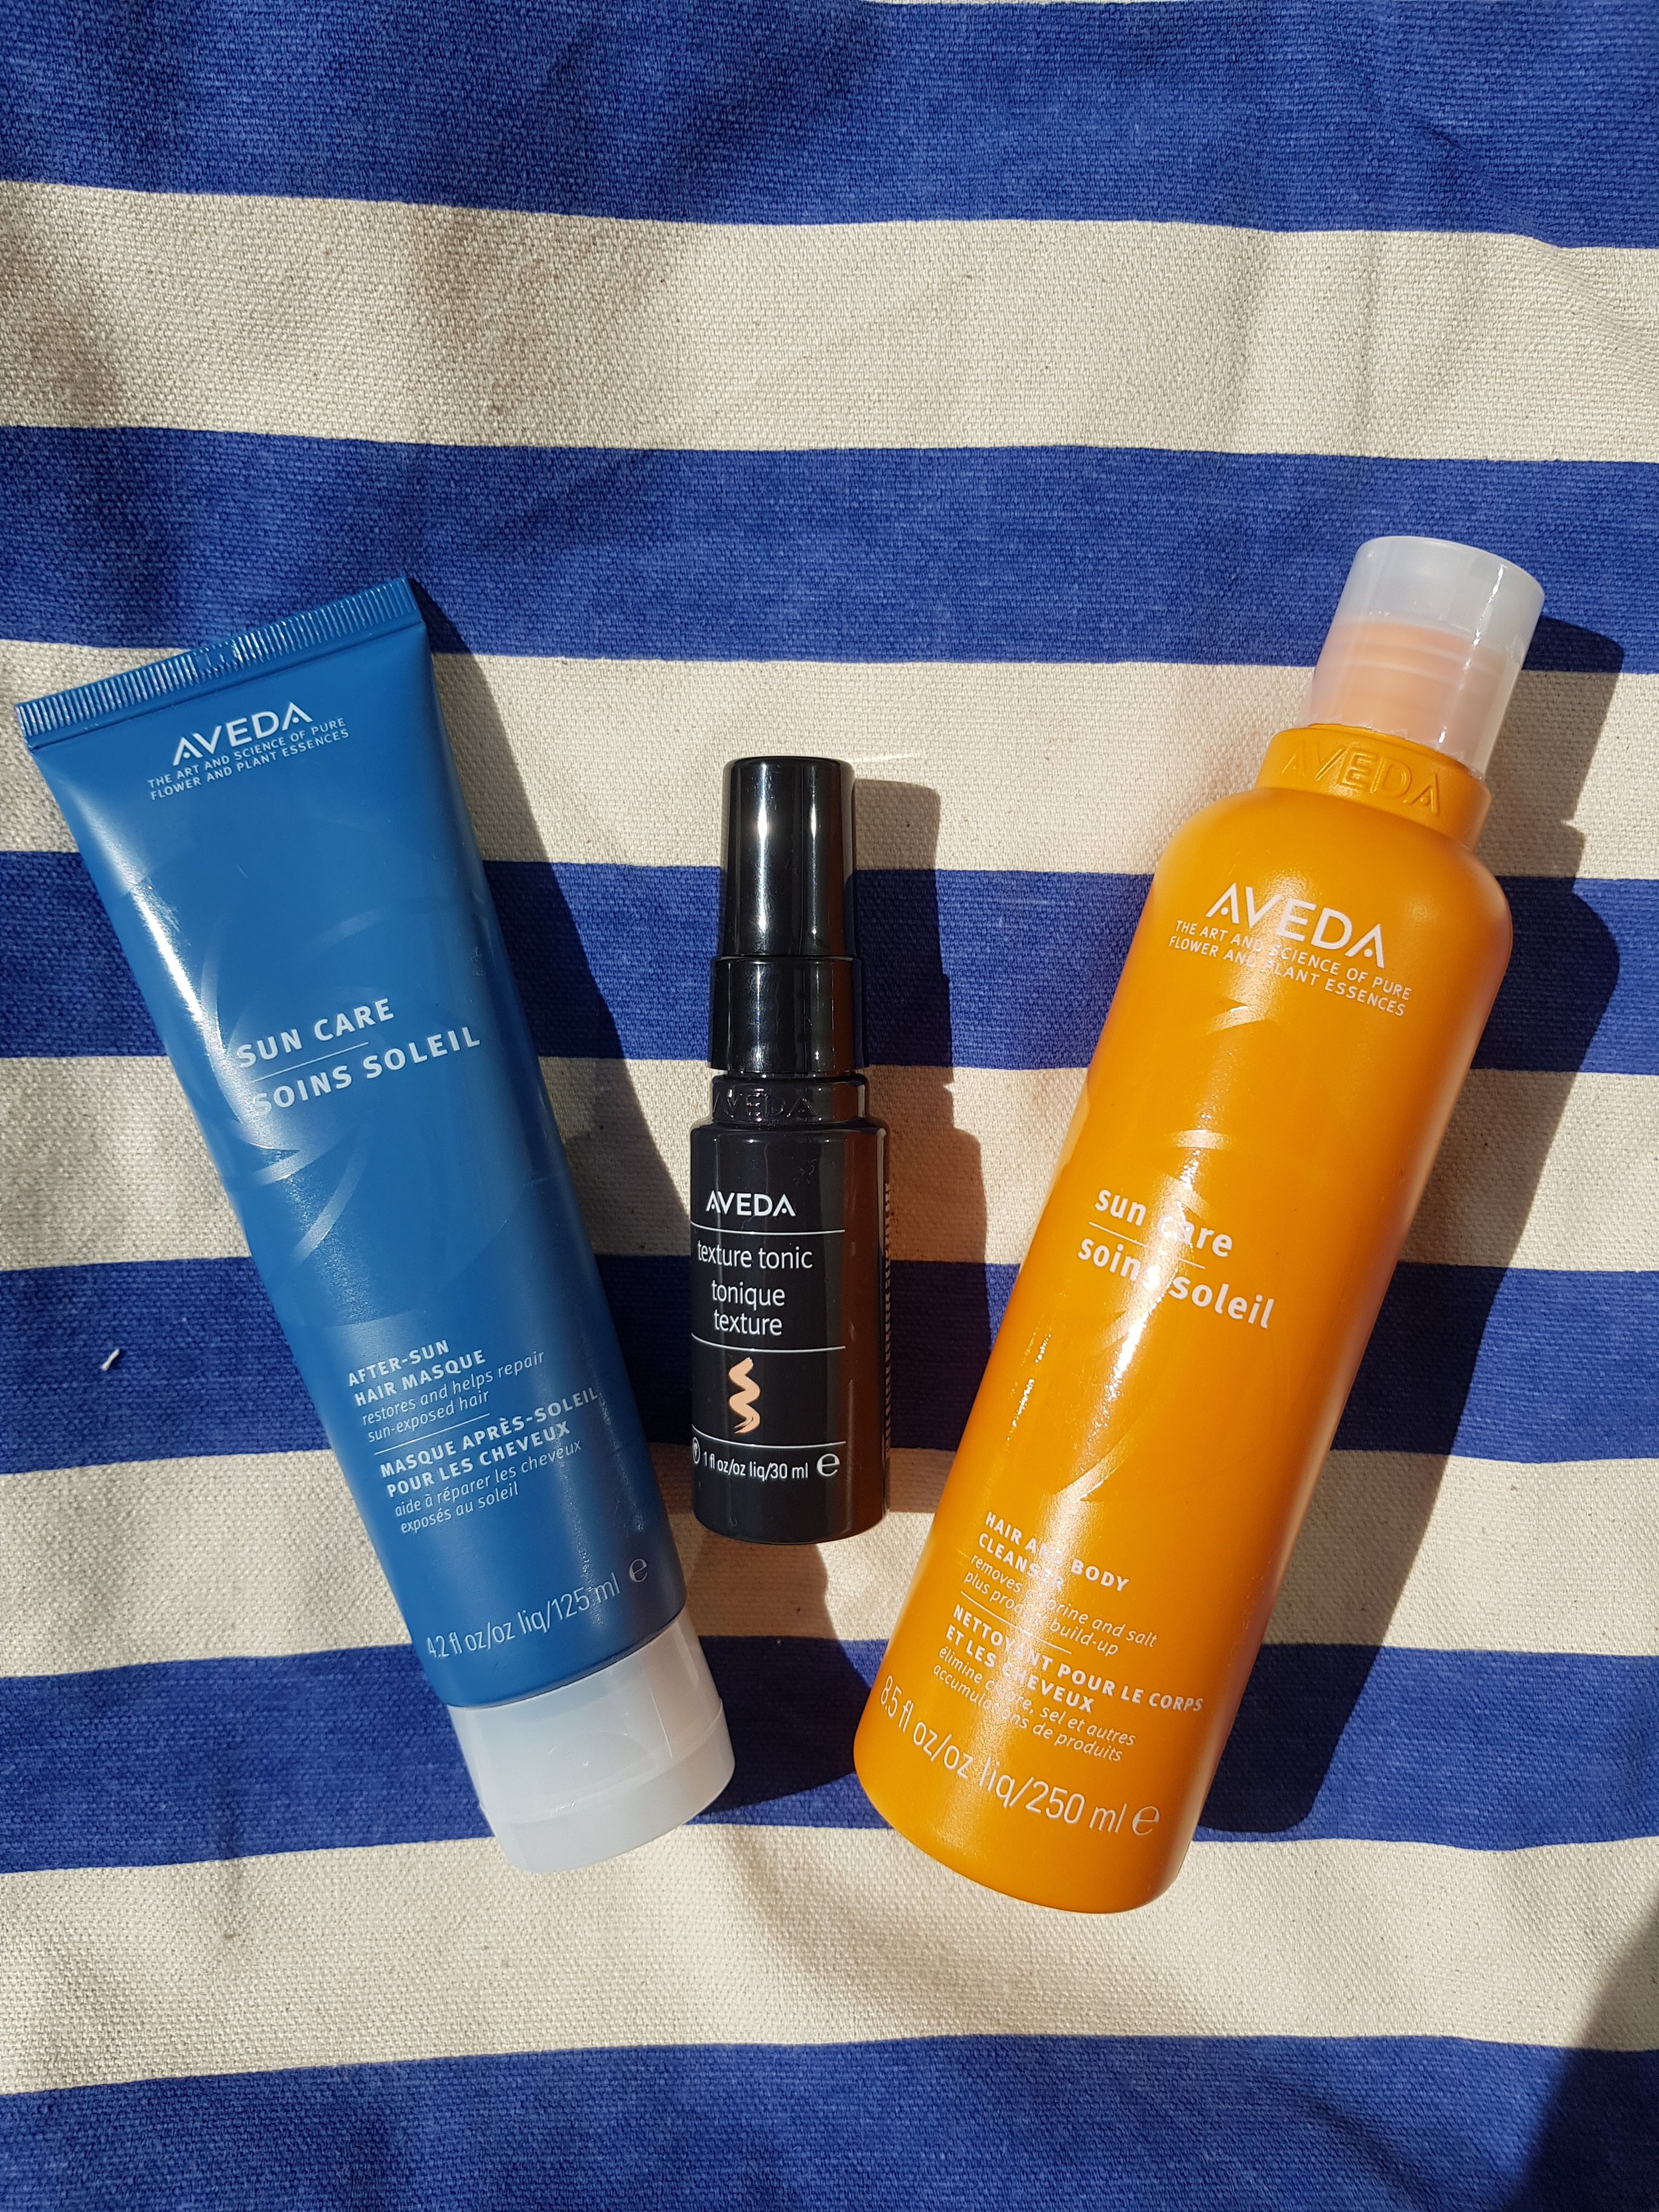 SPECIAL OFFER! - Stock up for your holidays and buy Sun Care Hair and Body Cleanser and Sun Care After-Sun Hair Masque in the salon (£43.50 for the set) and for a limited time you'll also receive a very chic striped beach tote and a travel-sized Texture Tonic, free!